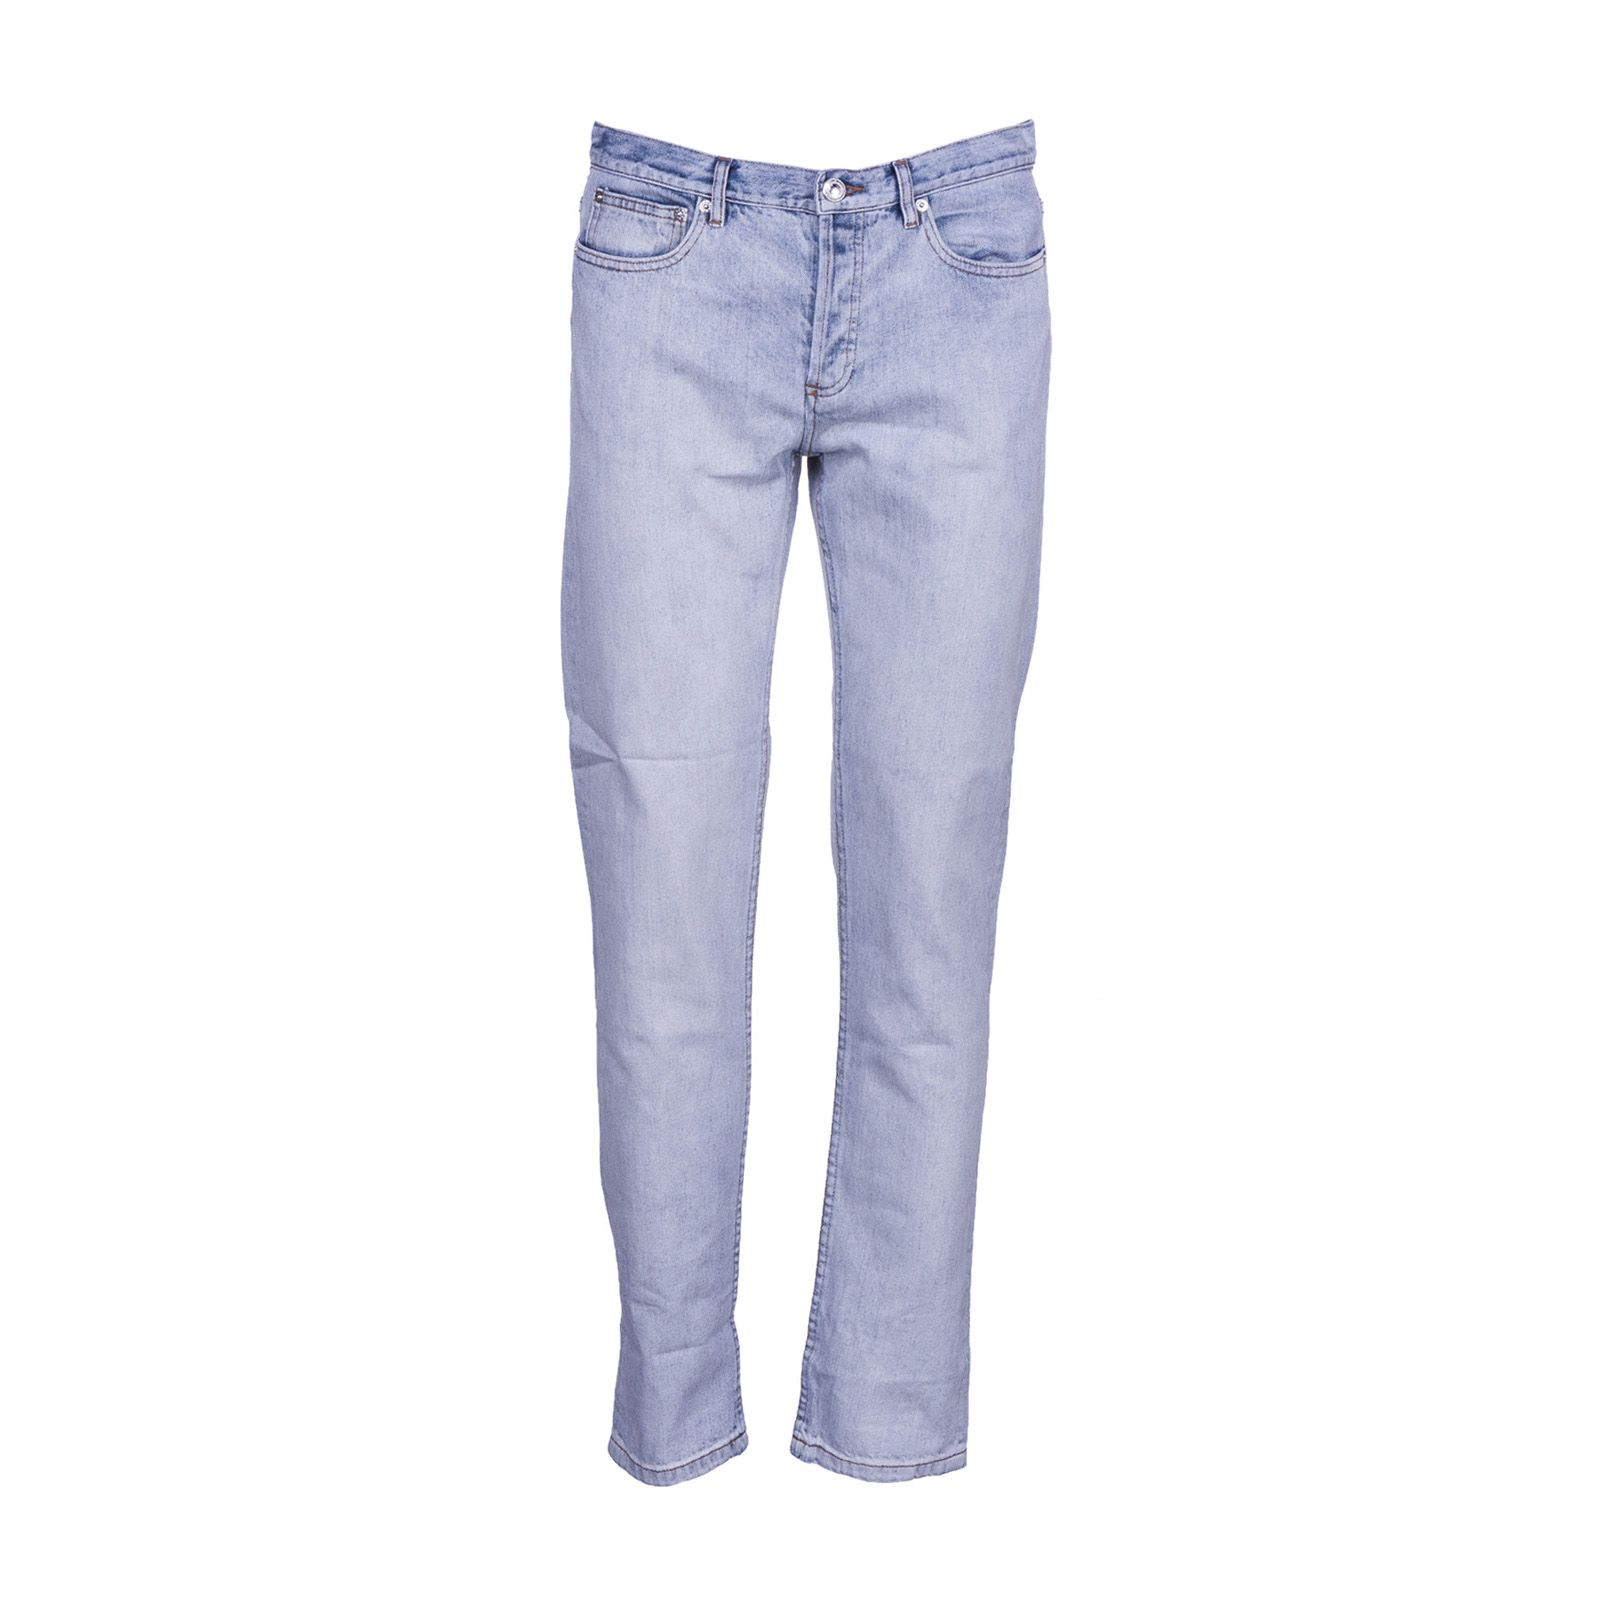 A.p.c. Regular Straight Leg Jeans